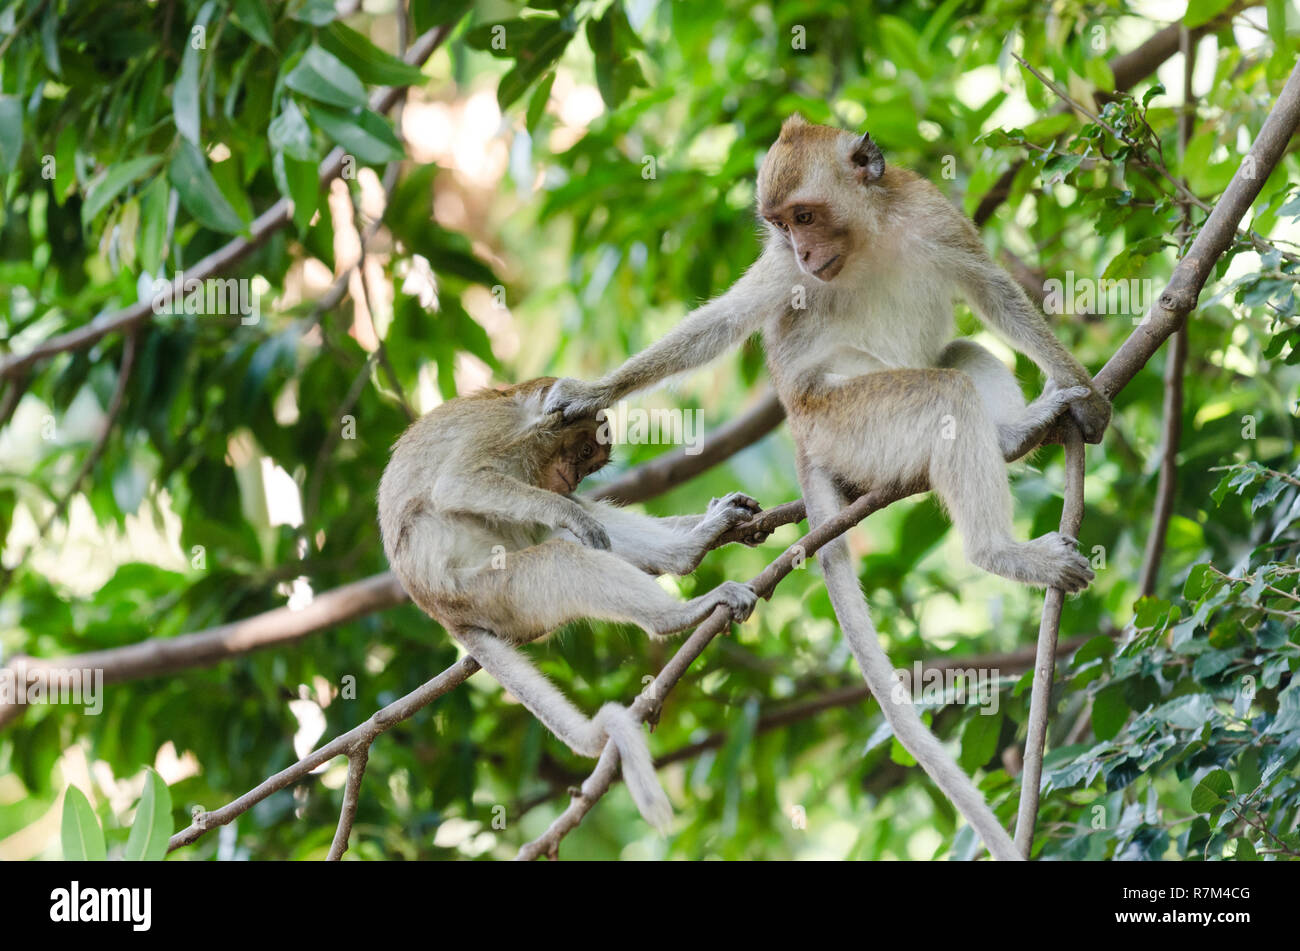 Crab-eating macaque monkey (Macaca Fascicularis) perched on tree and grabbing another one by the head, Railay, Thailand - Stock Image